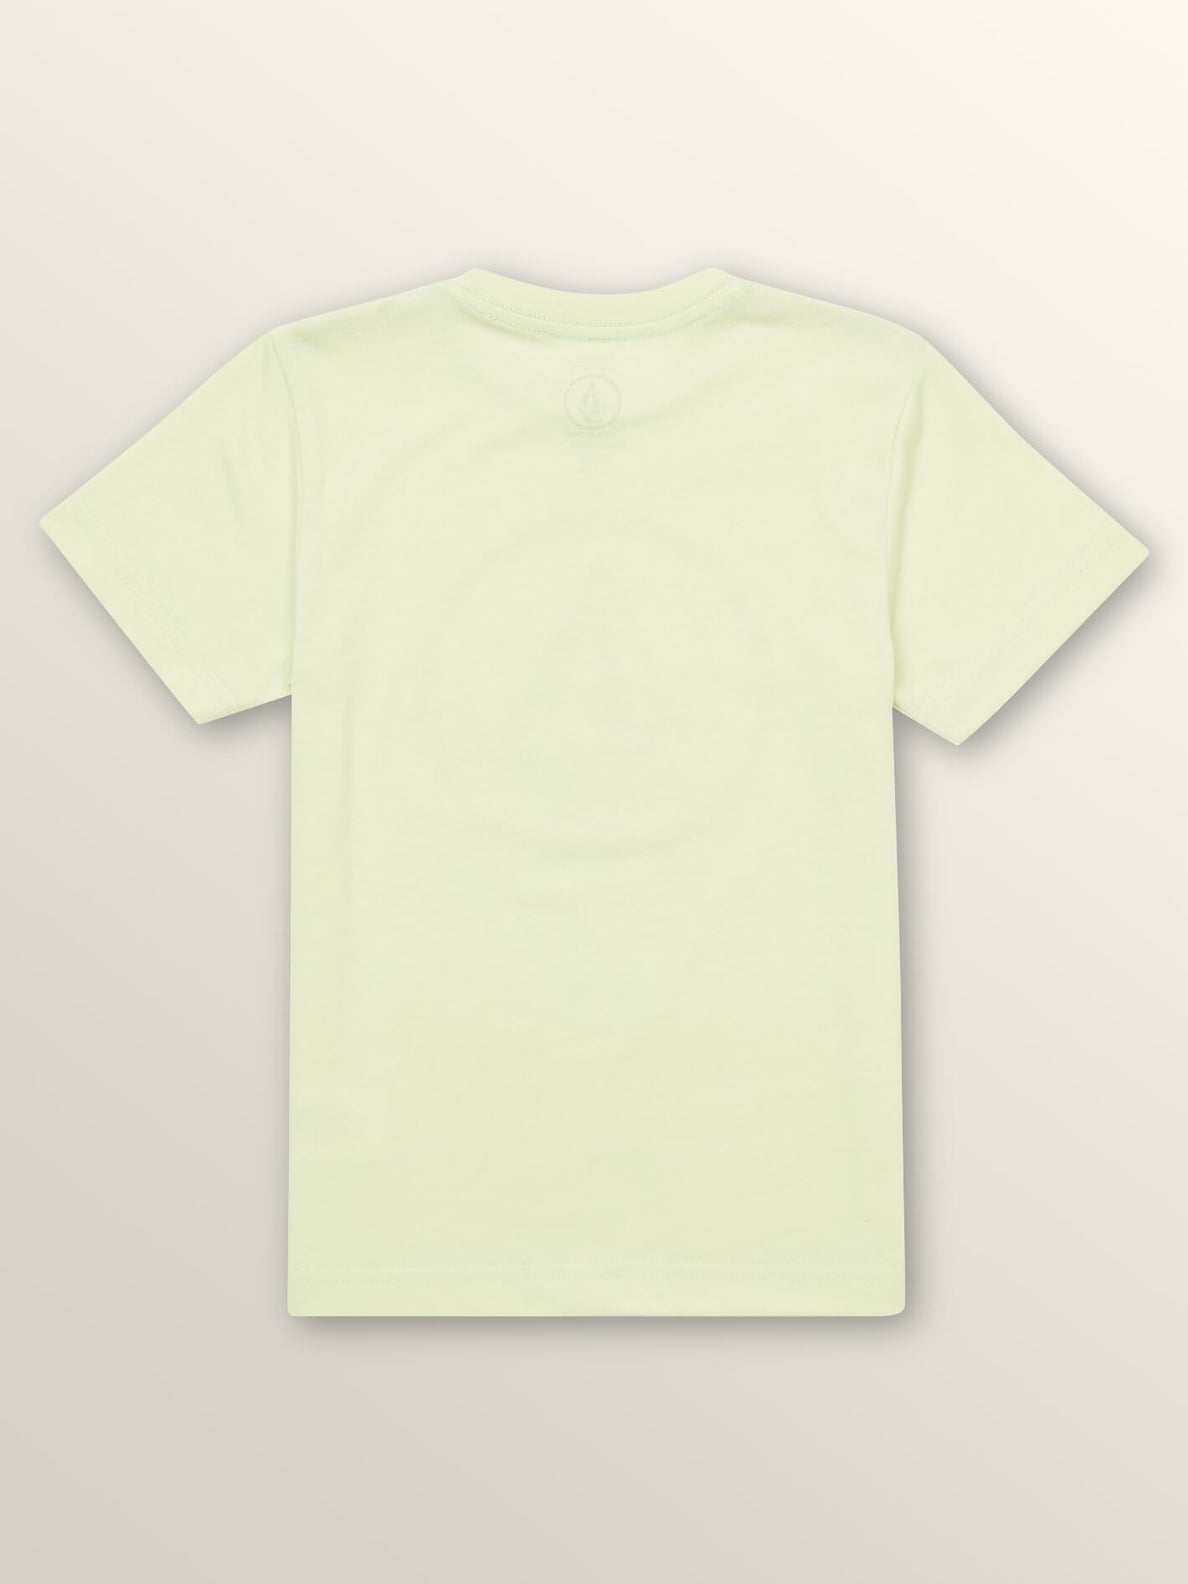 Little Boys Peace Blur Short Sleeve Tee In Mist Green, Back View